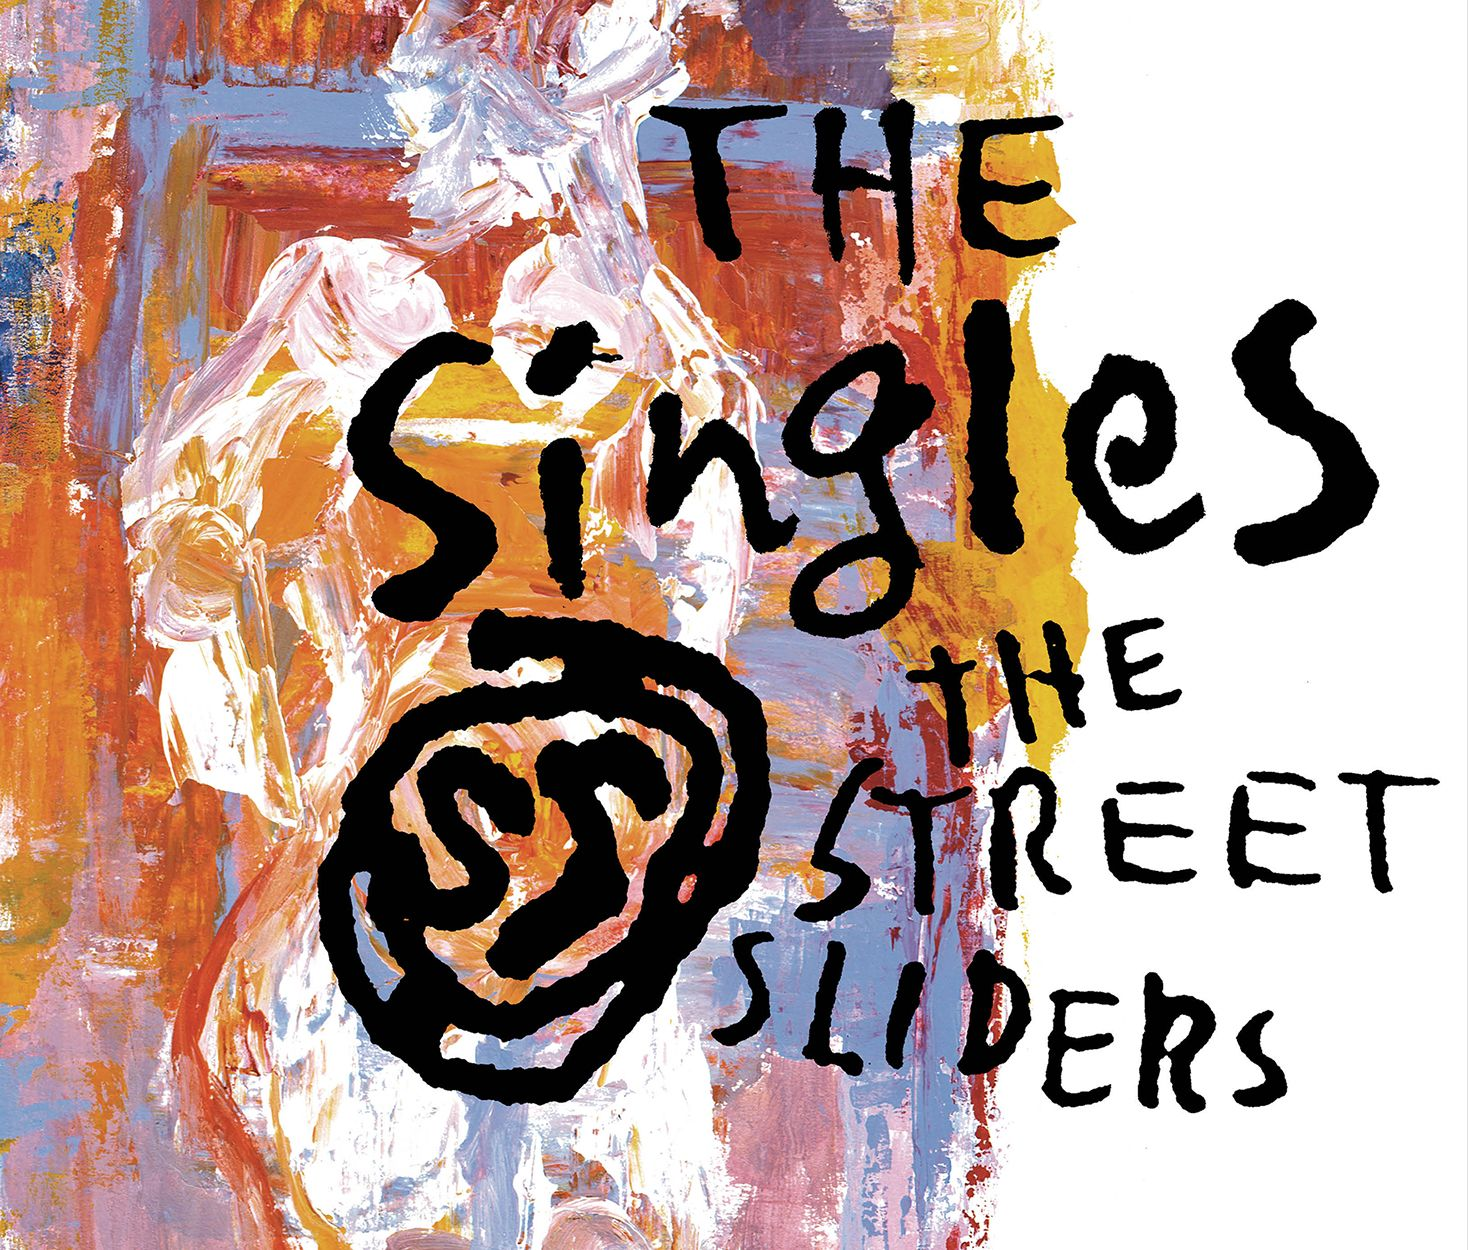 THE SingleS The Street Sliders